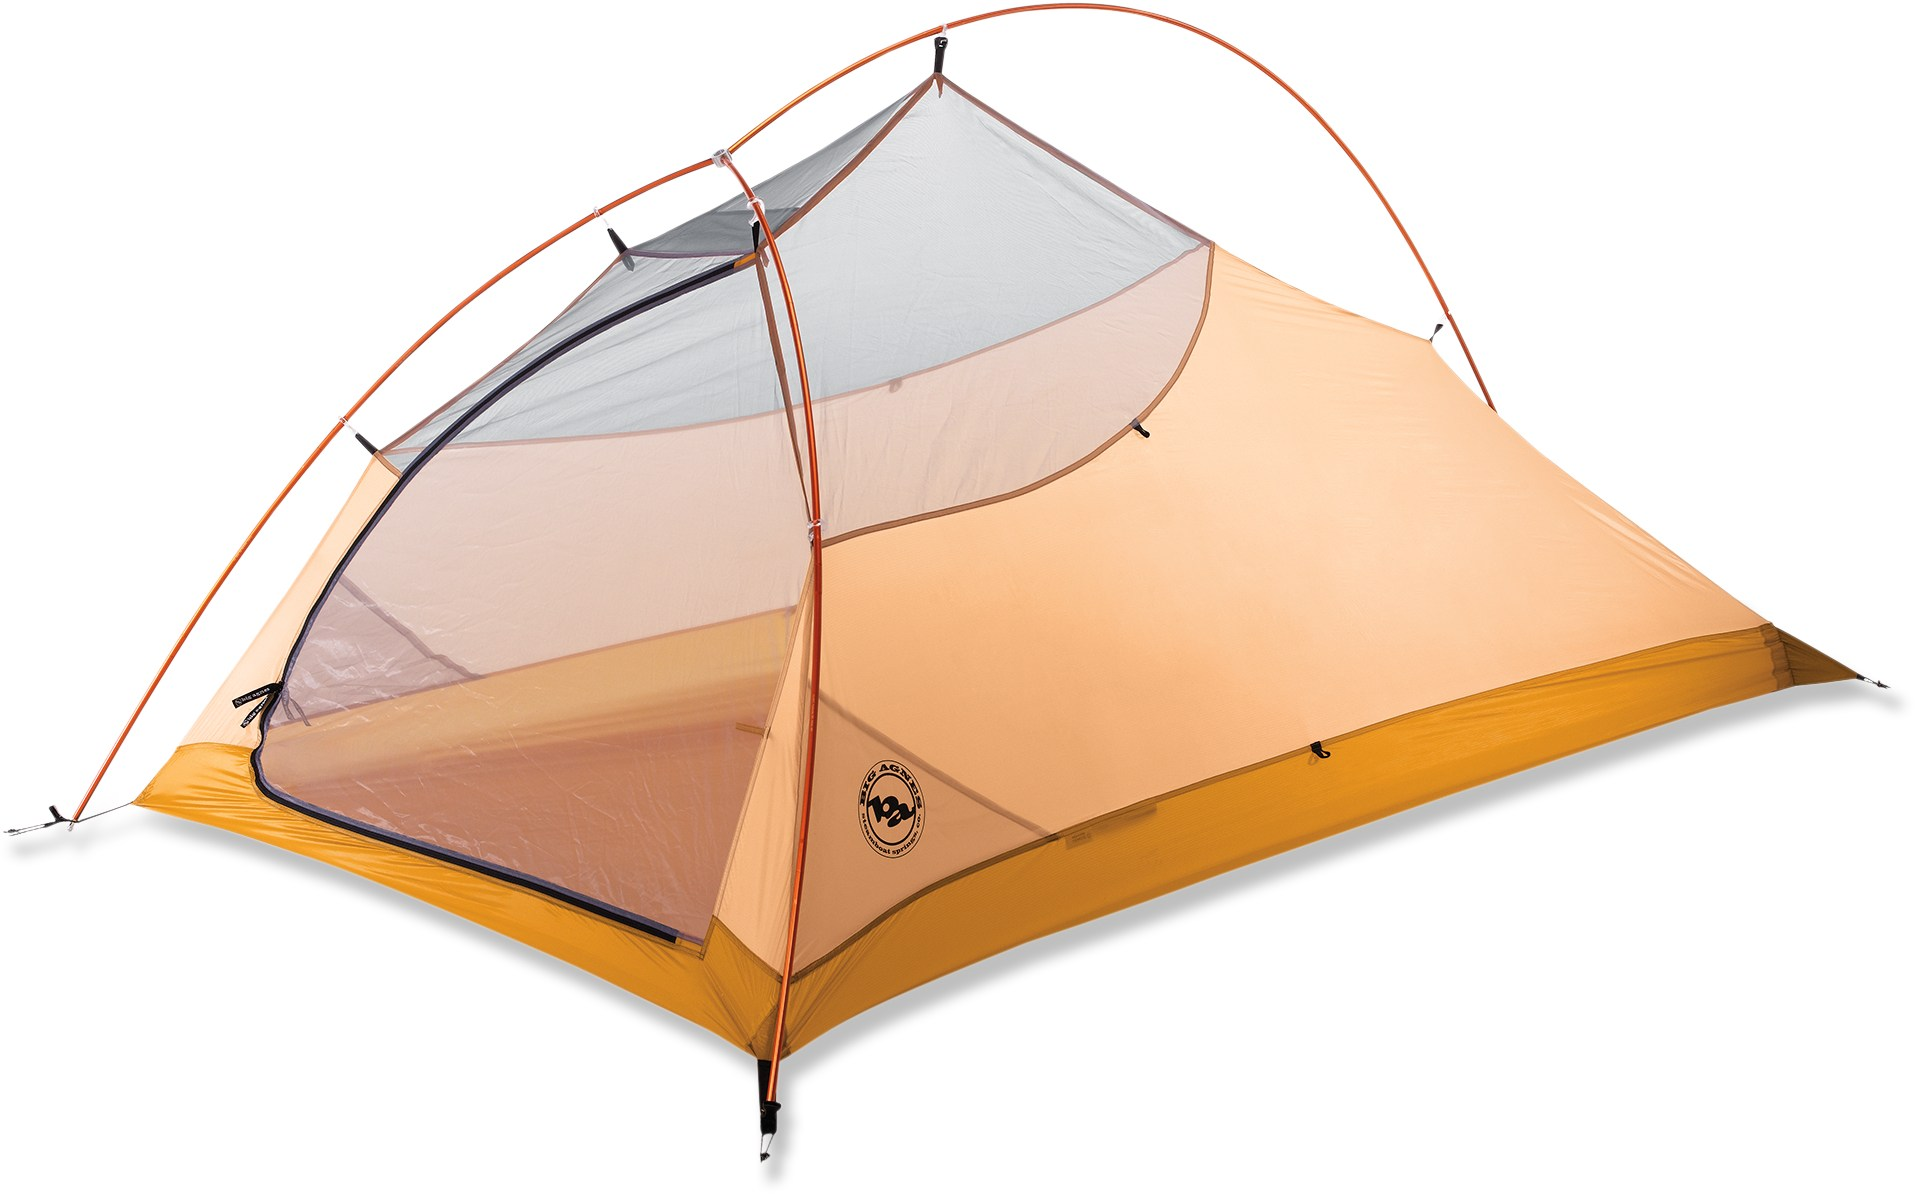 The Best Lightweight Backpacking Tent: The Big Agnes Fly Creek UL2 | Oregon Outside